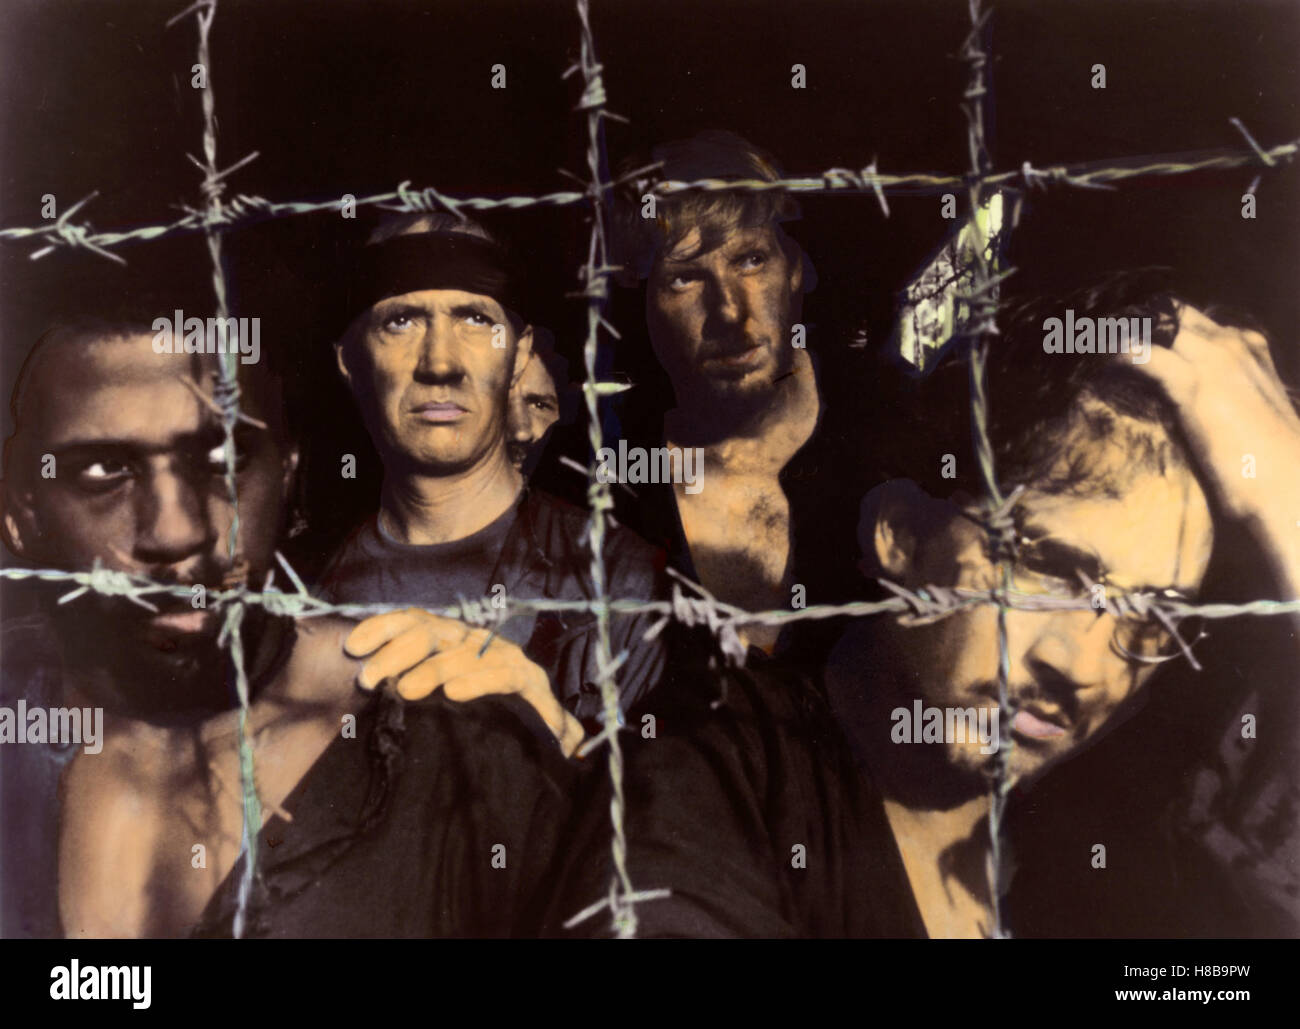 P.O.W. - Die Vergeltung, (BEHIND ENEMY LINES / P.O.W. - THE ESCAPE) USA 1986, Regie: Gideon Amir, STEVE JAMES, DAVID - Stock Image